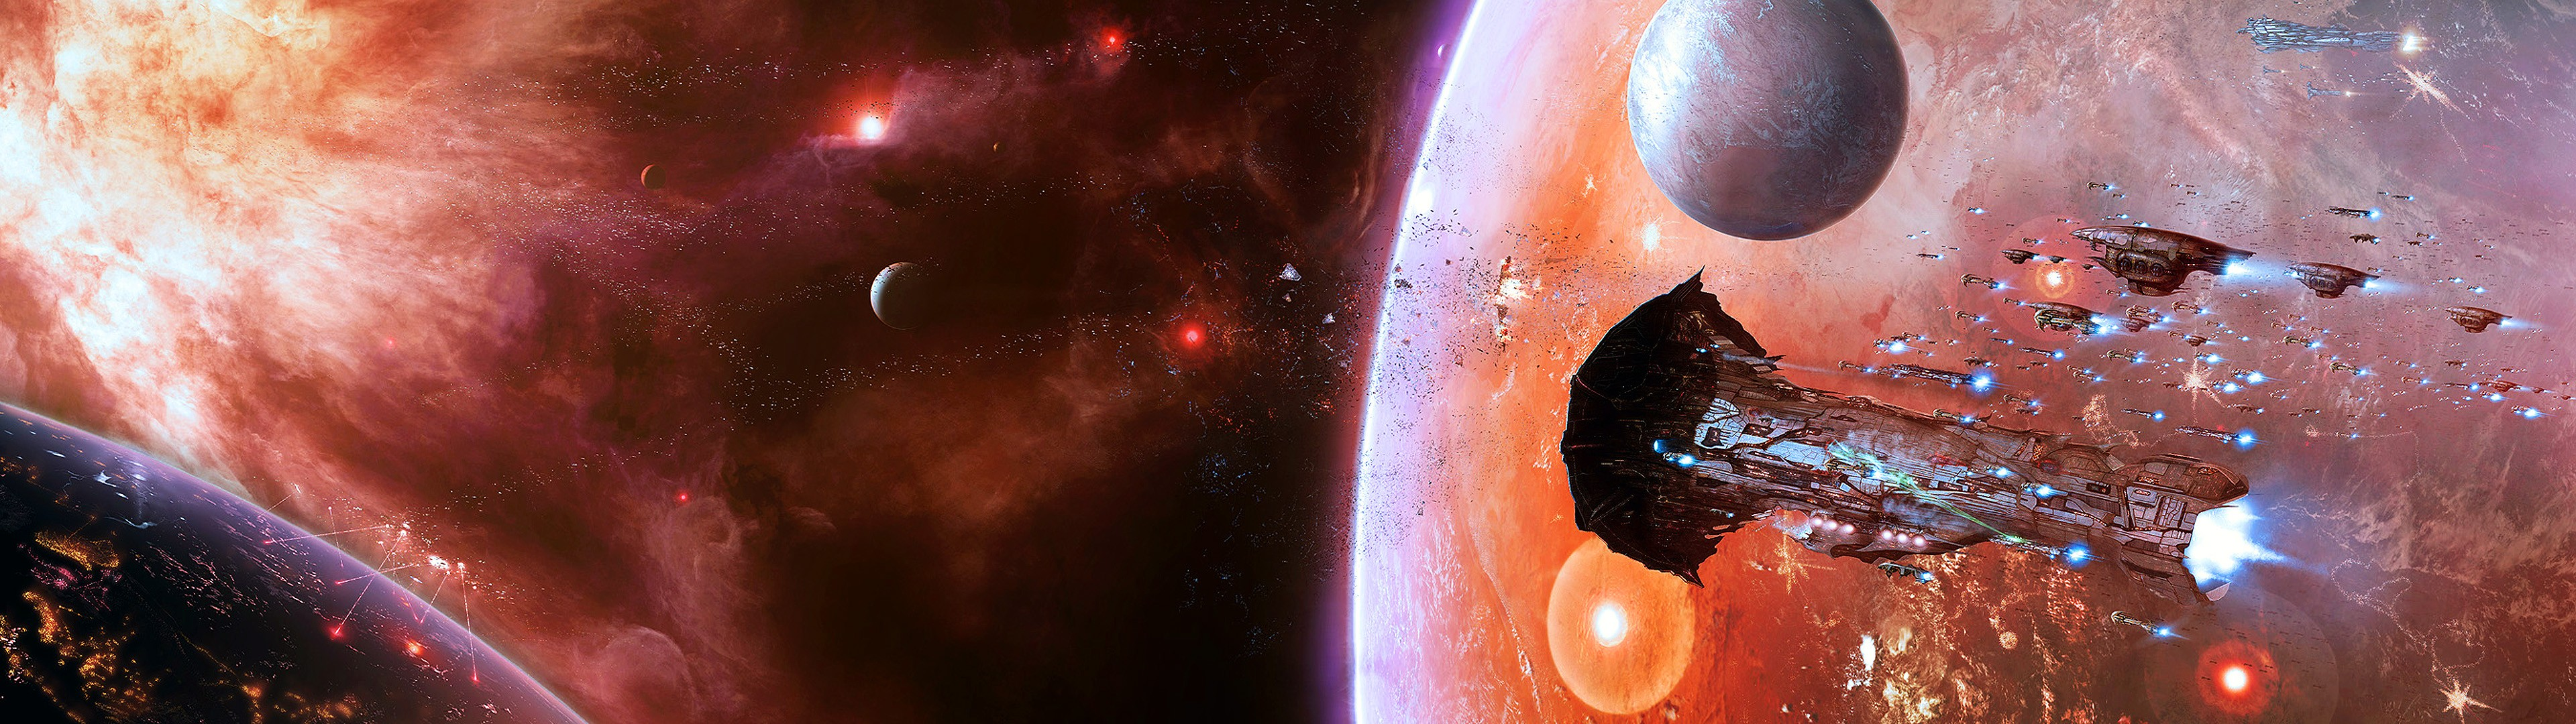 General 3840x1080 space EVE Online multiple display spaceship Amarr video games PC gaming video game art science fiction